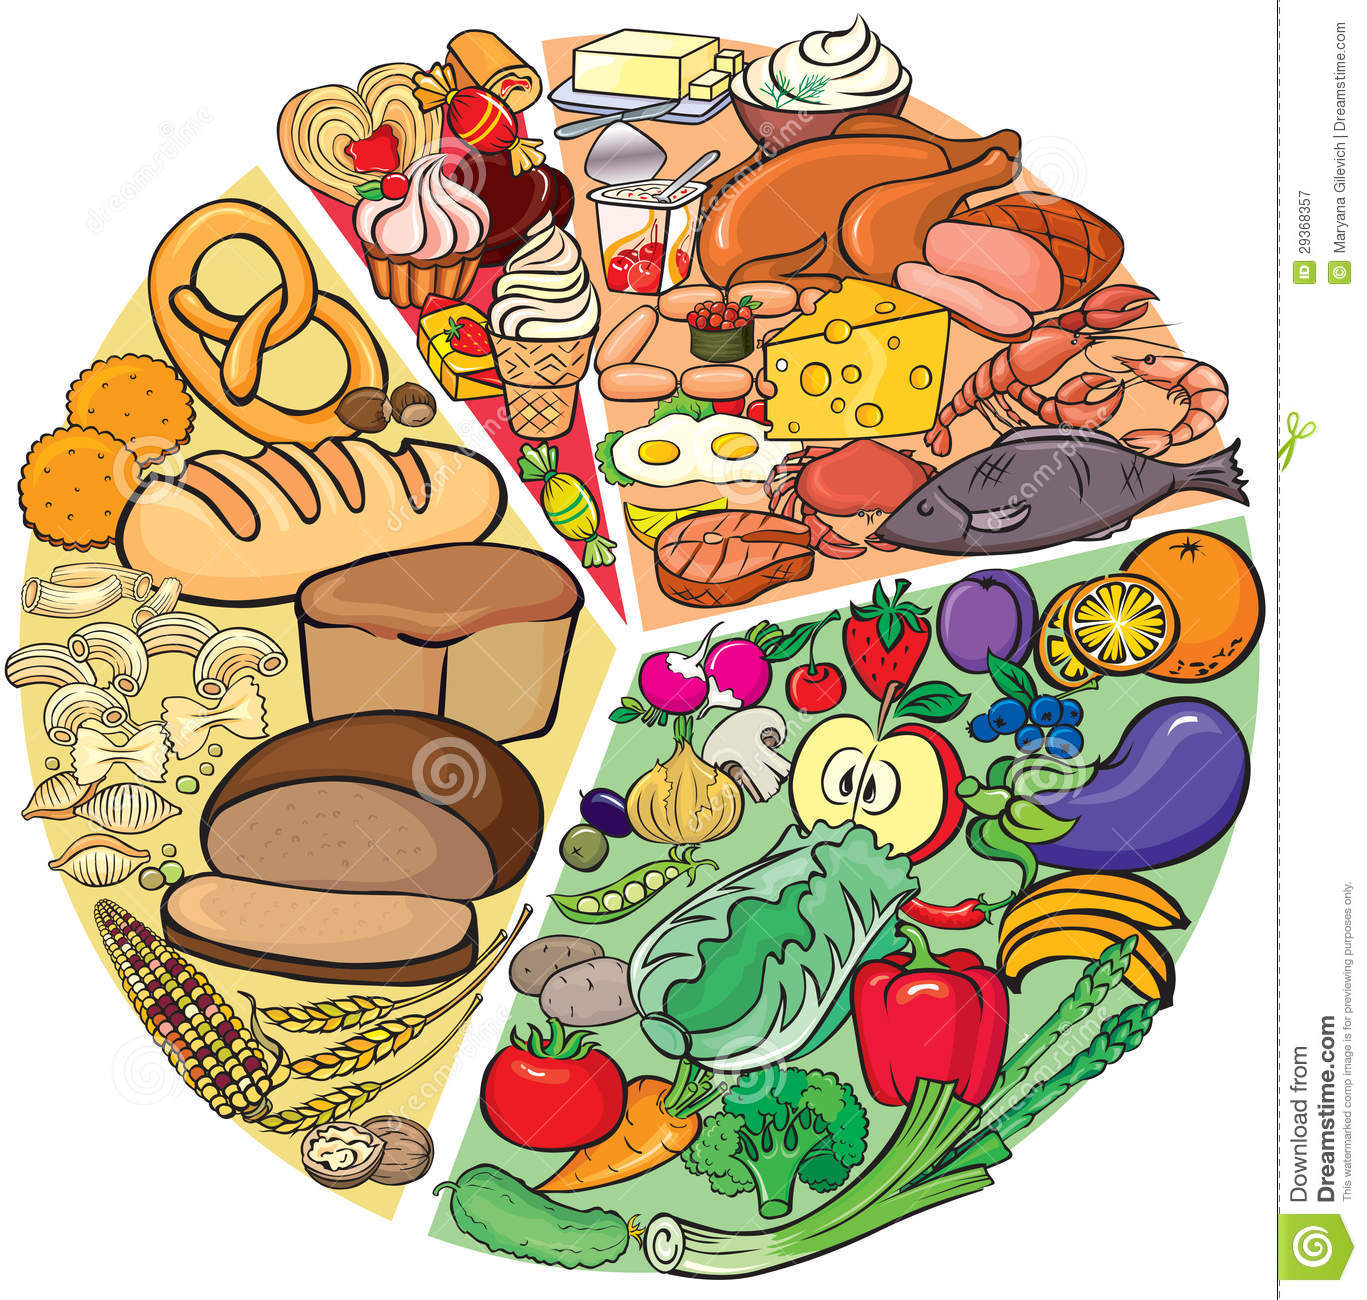 Protein Carbohydrate Diet Royalty Free Stock Photography